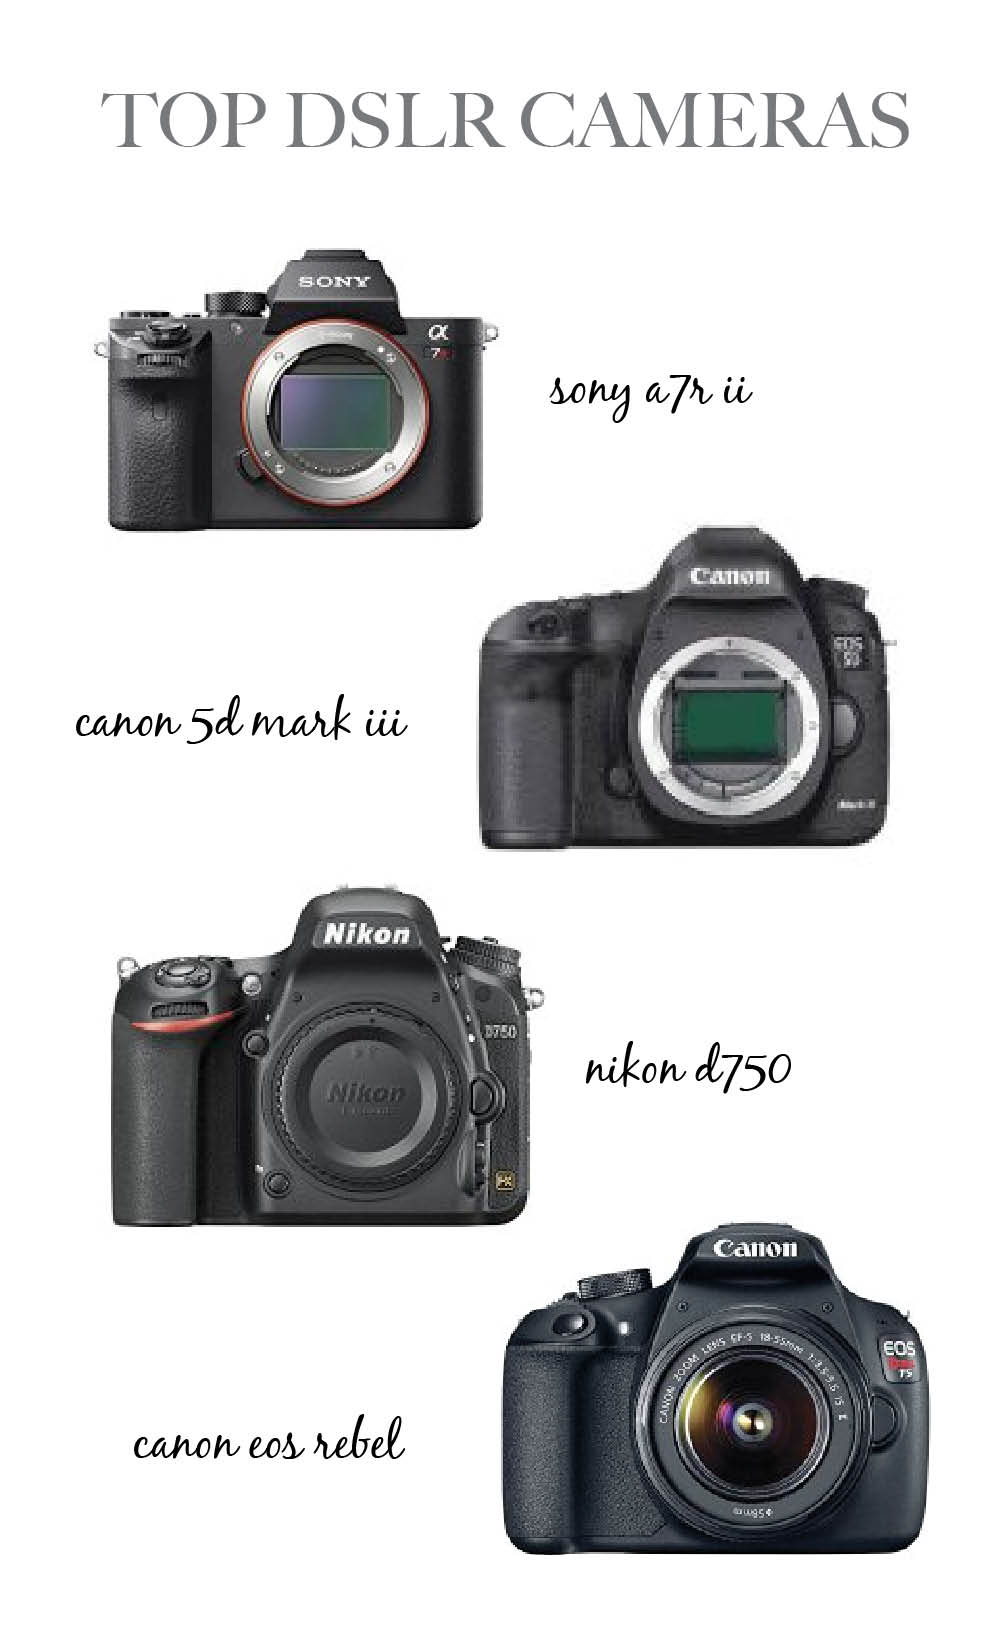 Top DSLR Cameras | Newborn Photography Studio Essentials - Lovely ...